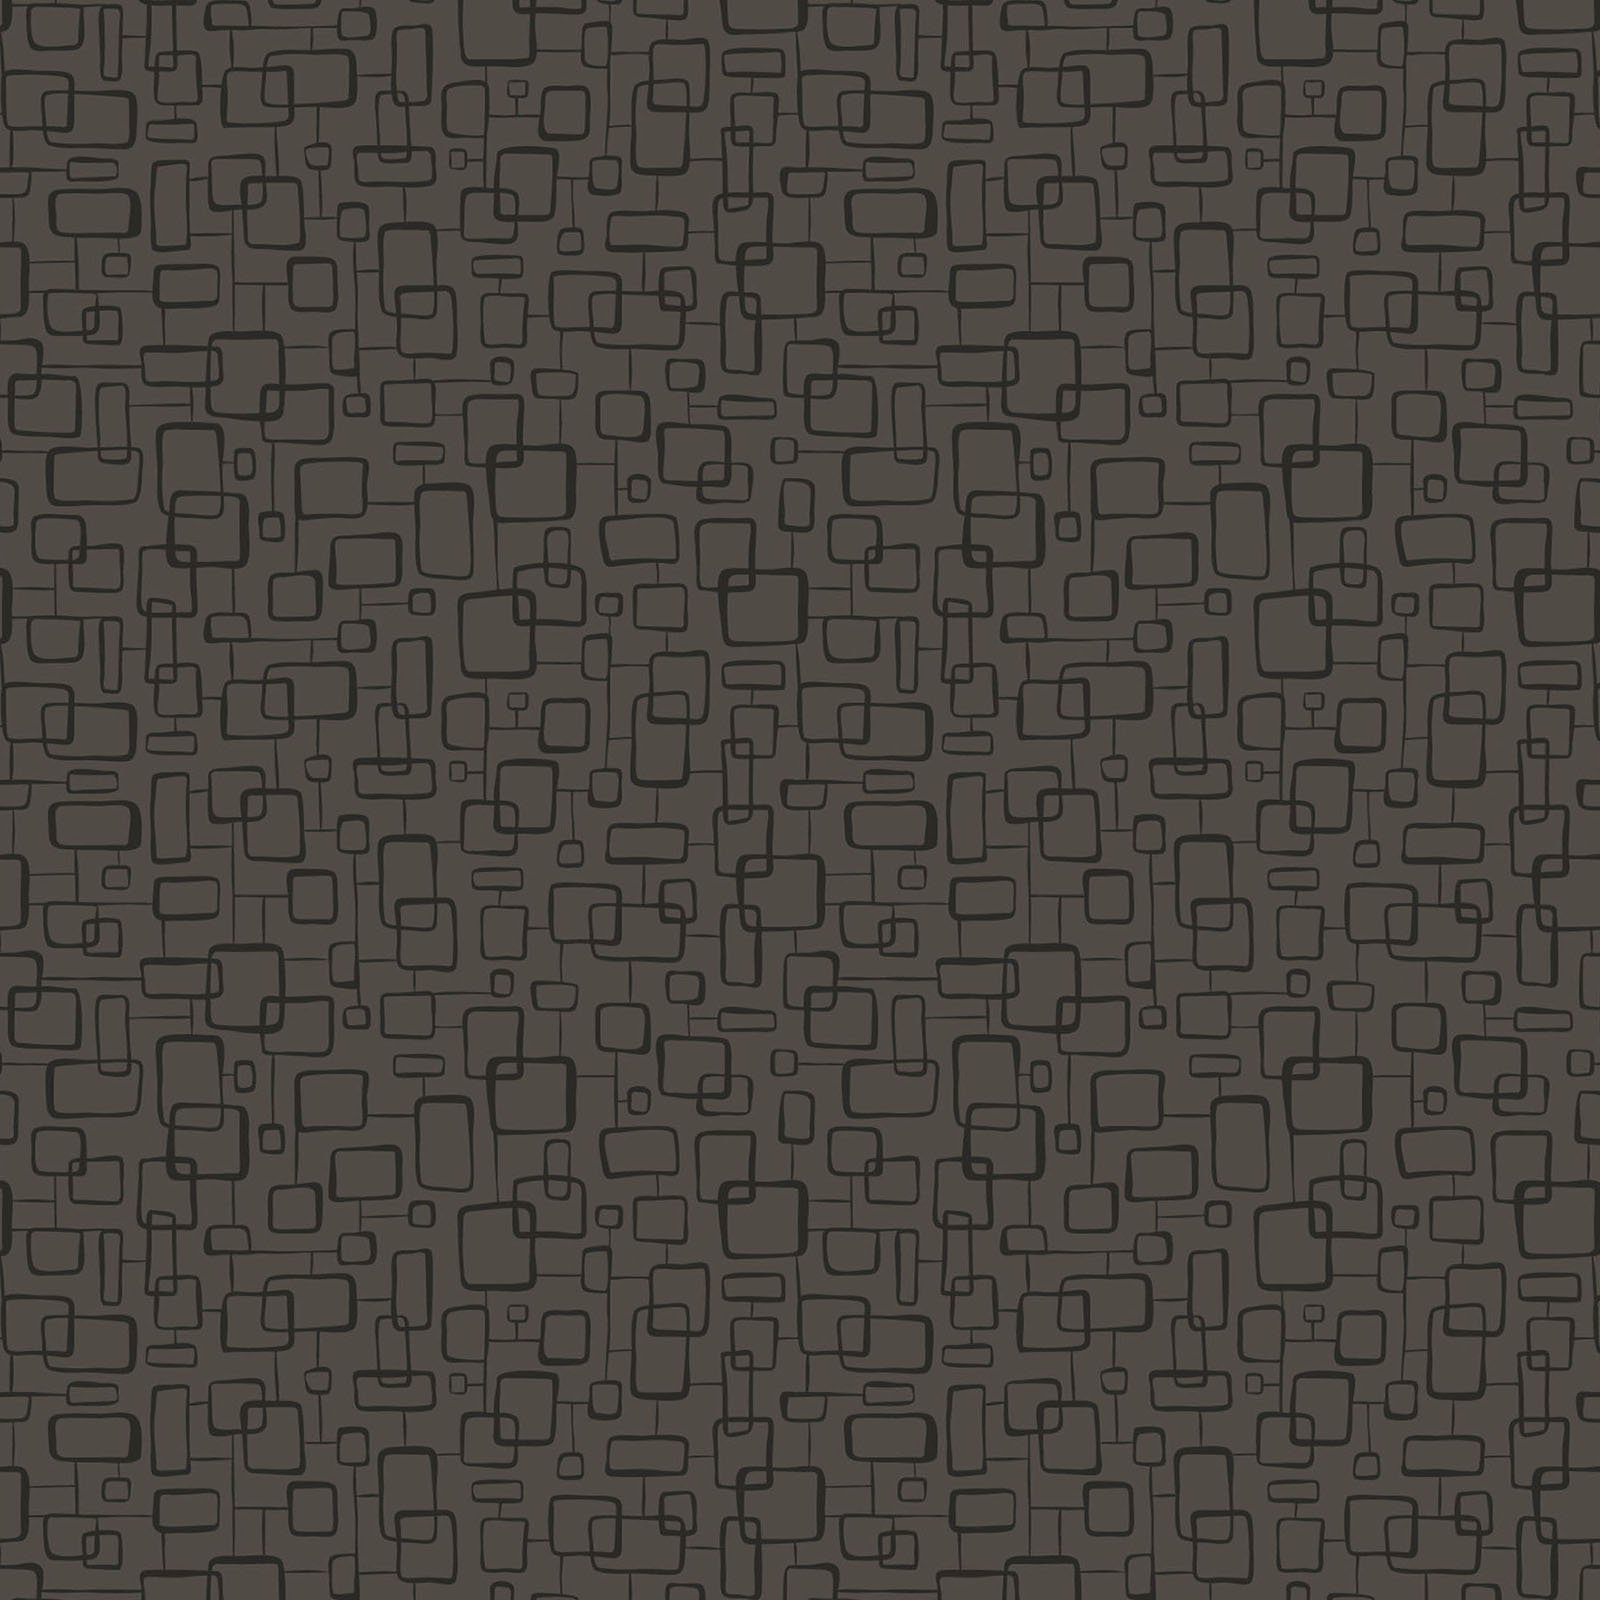 WHIM-4411 SZ - WHIMSY BY HANG TIGHT STUDIO ON THE QUADSILVER/BLACK